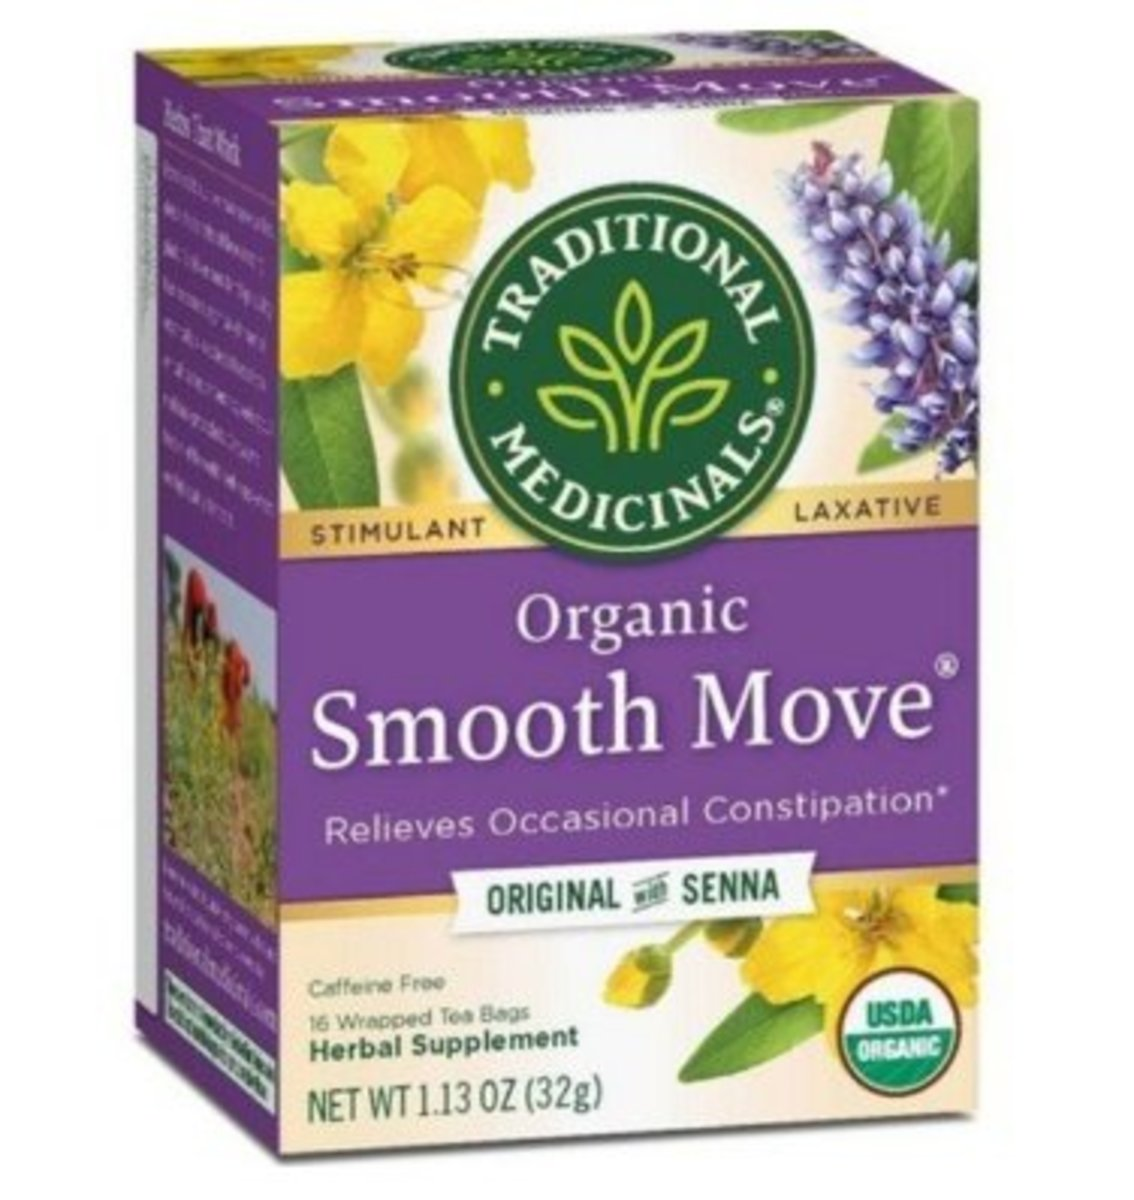 Organic Smooth Move (16Packs) (24g)-Paralle Import Goods